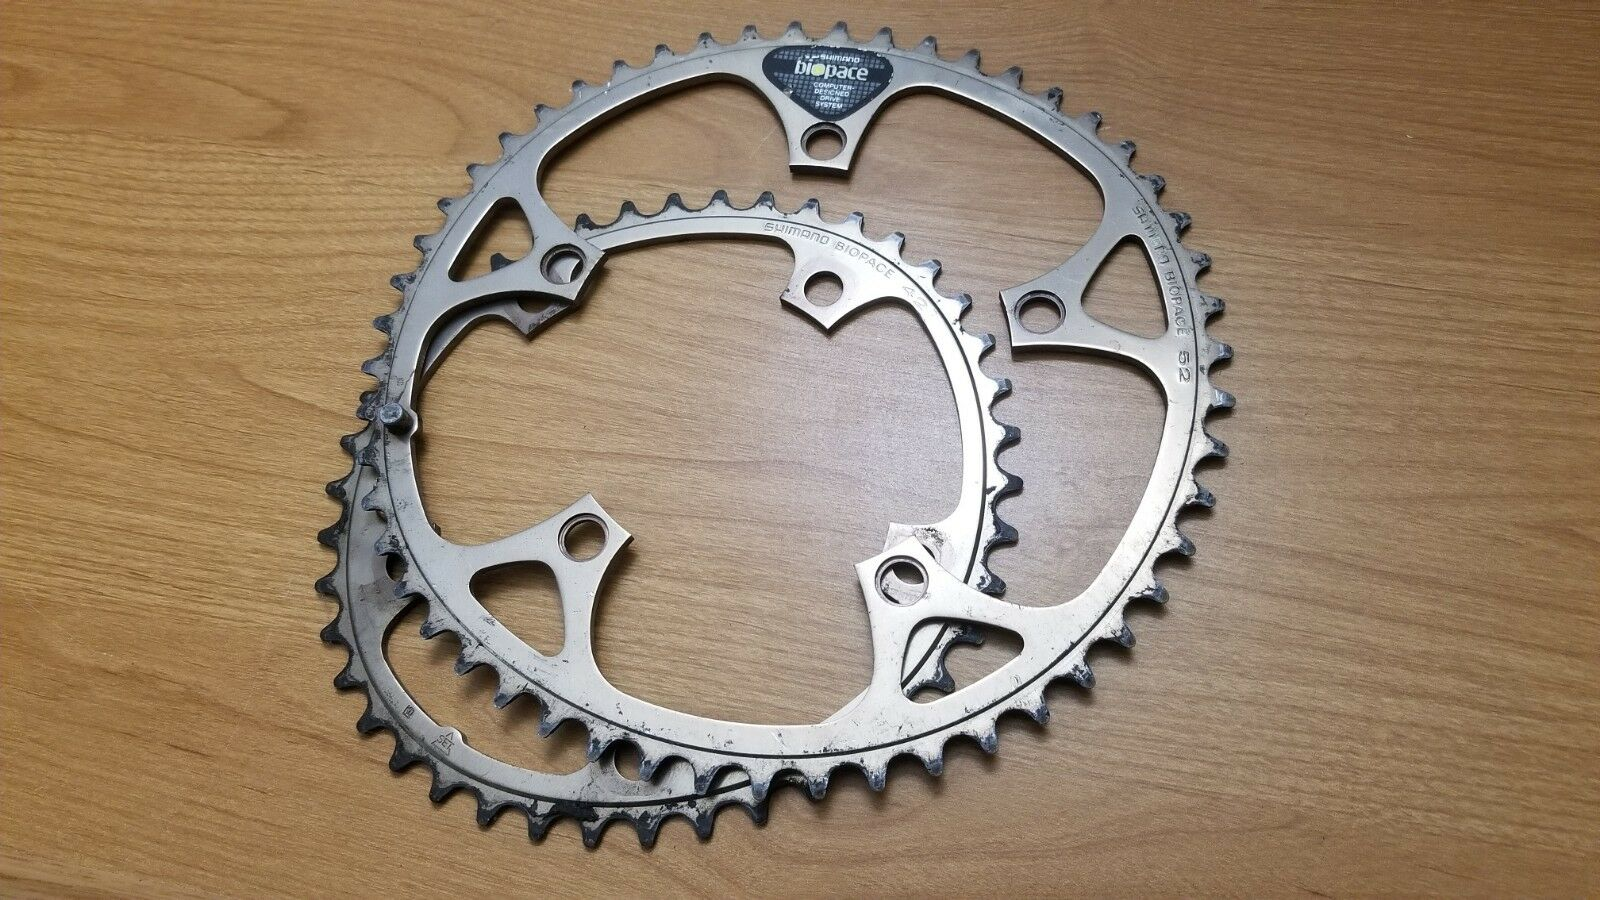 Shimano BioPace road  chainring 52t 42t 130mm  buy brand